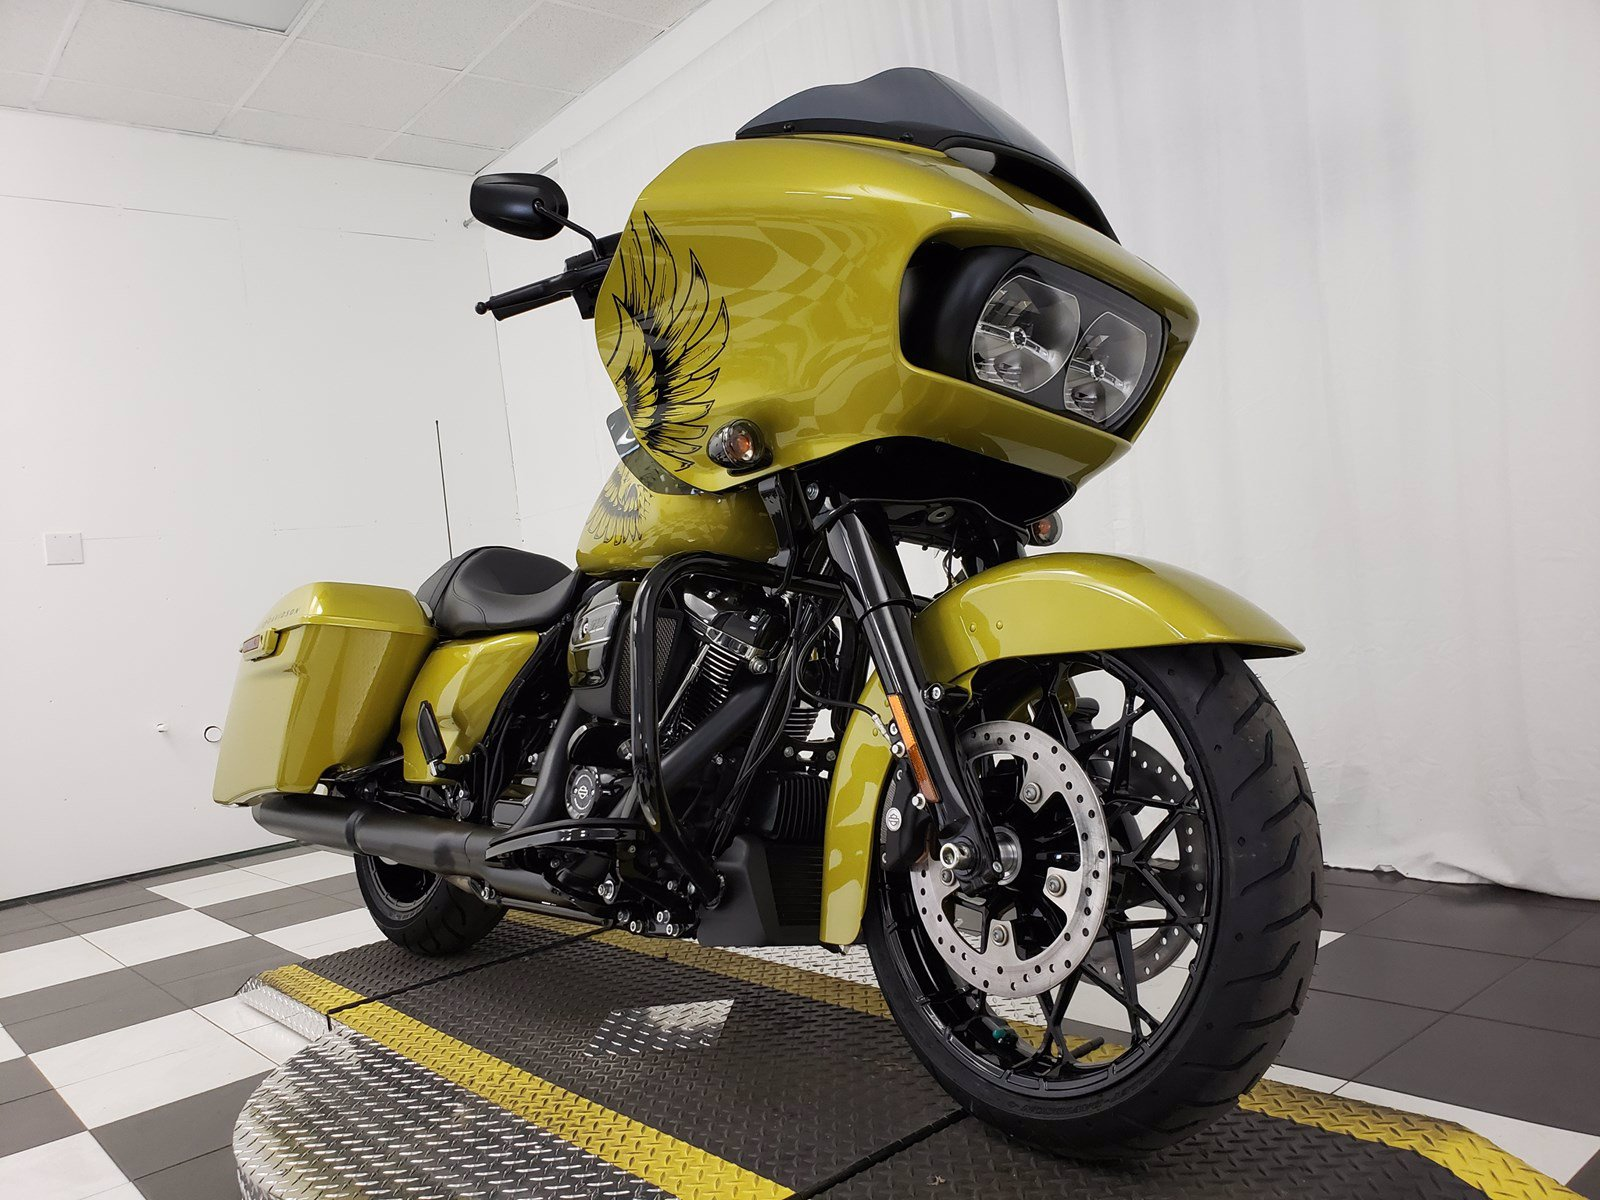 New 2020 Harley-Davidson Road Glide Special FLTRXS Touring ...